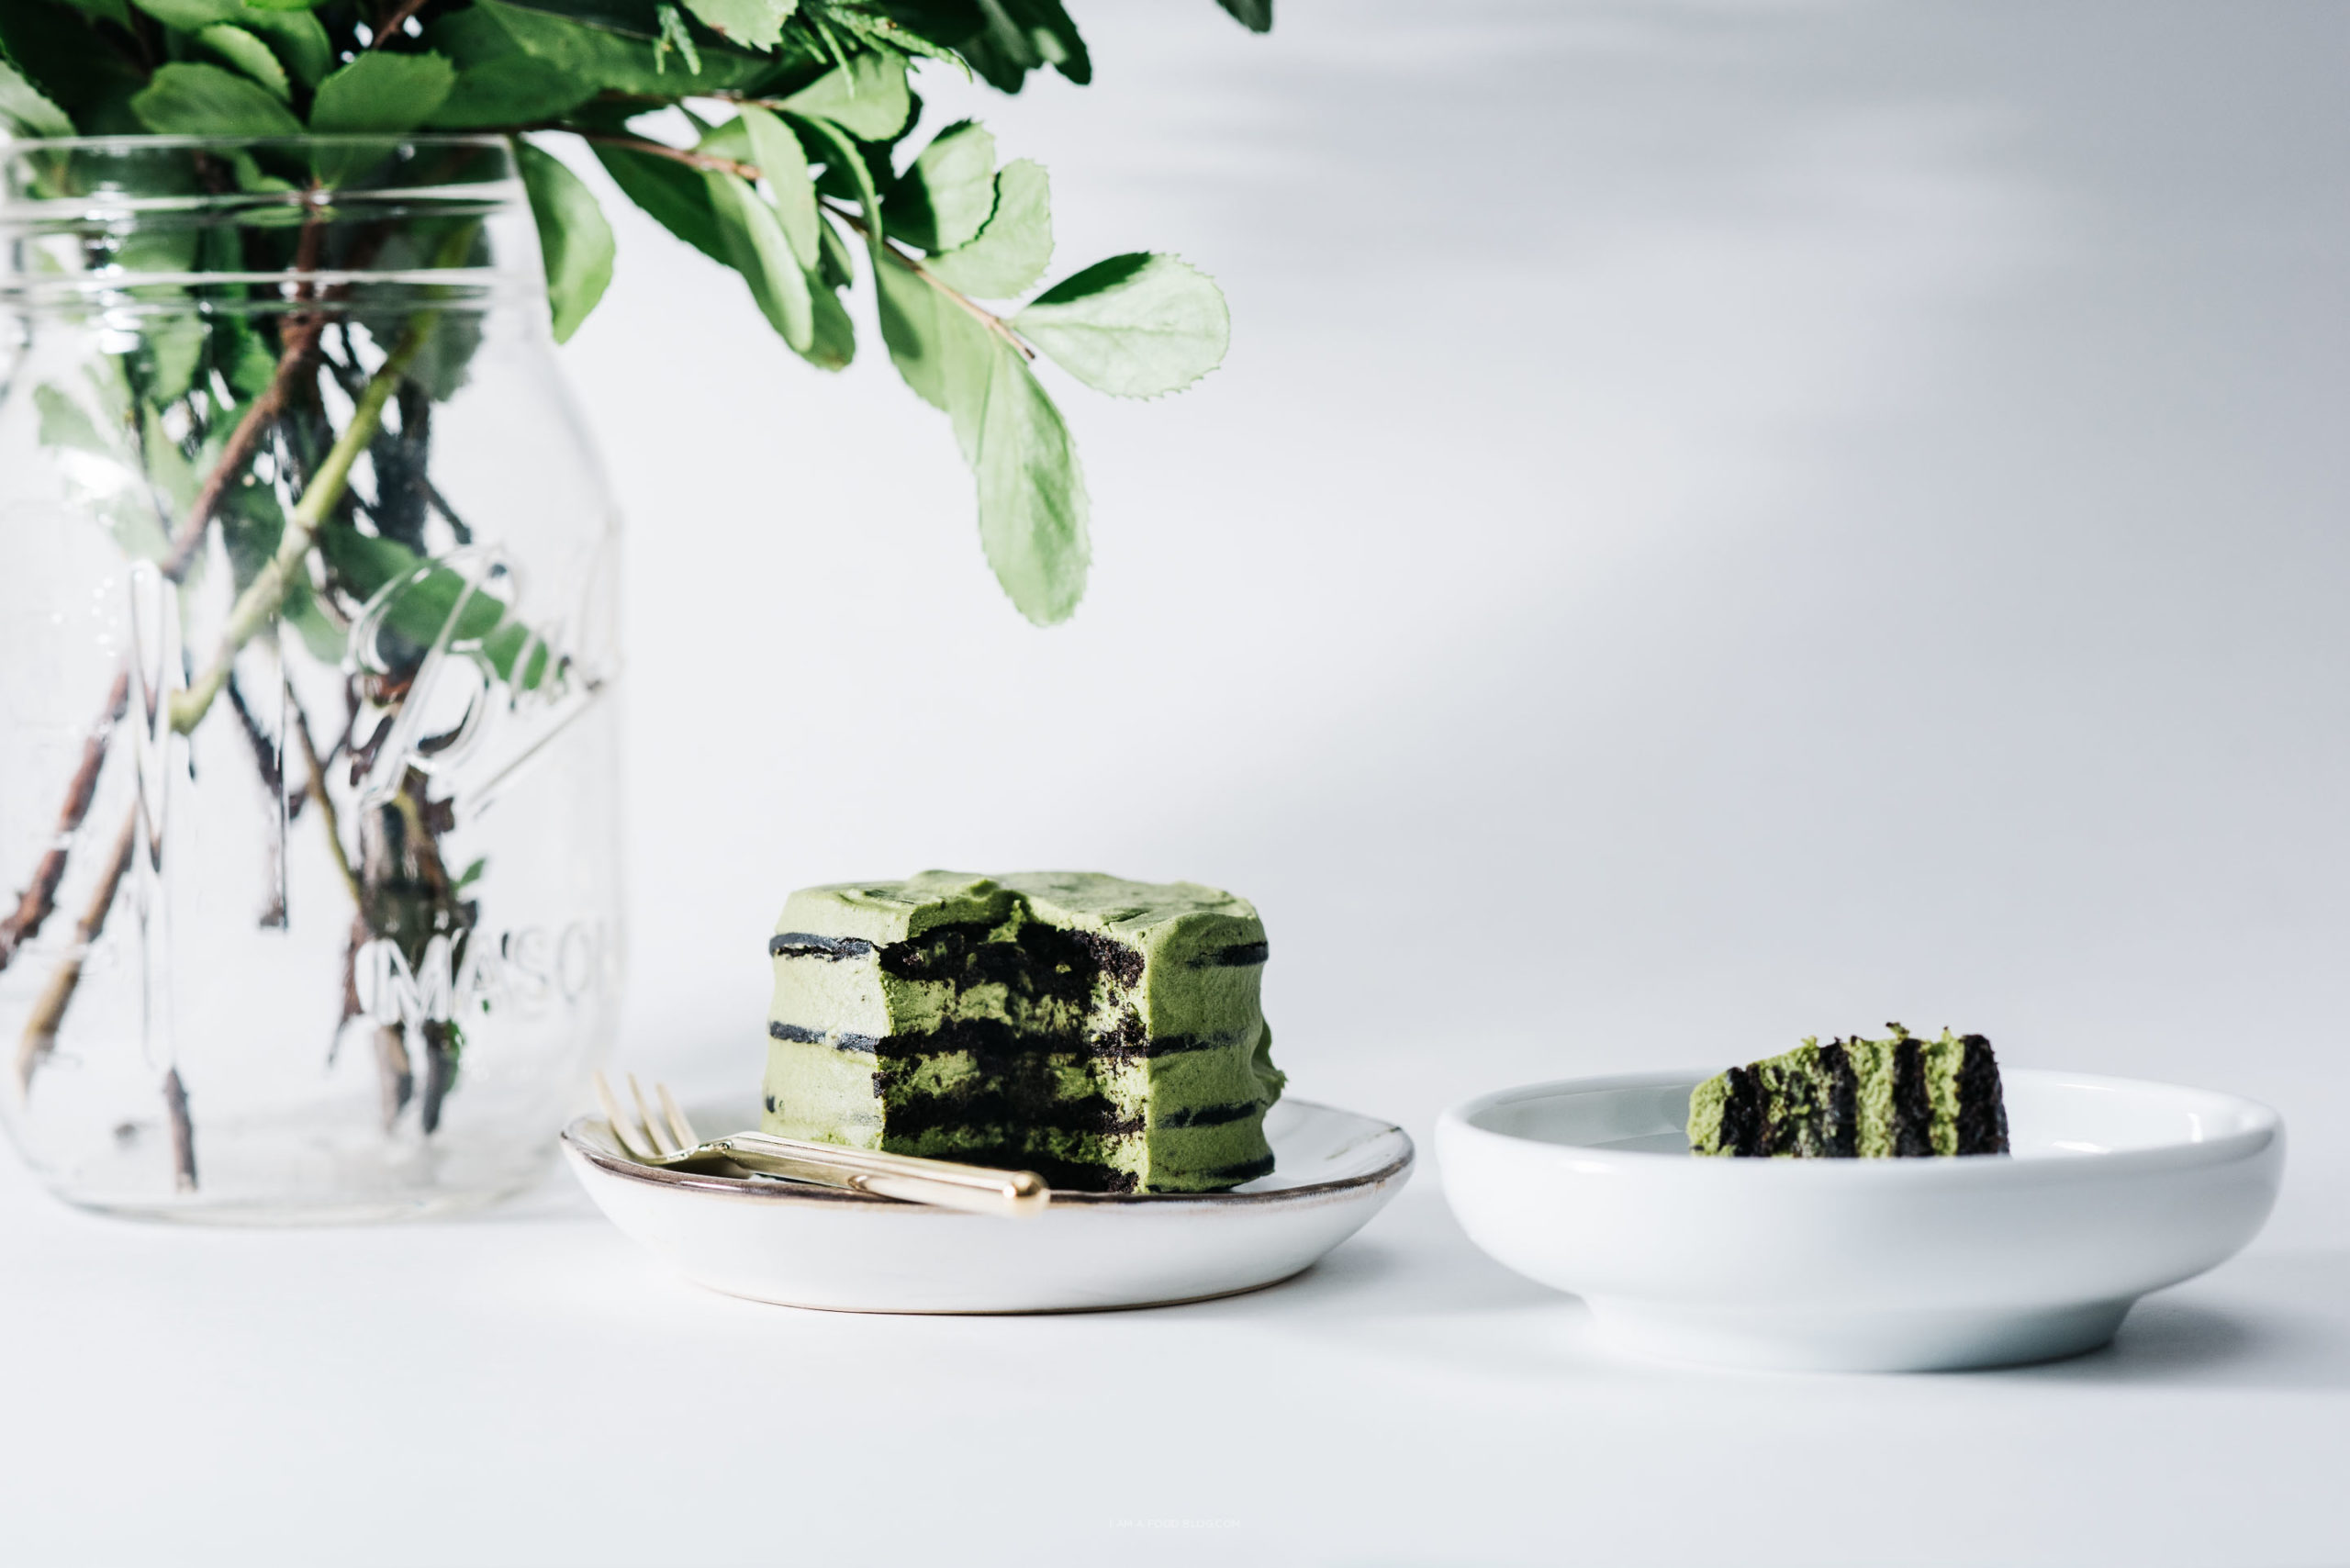 LXP - Lifexpe - How To Make A Delicious Plant-based Chocolate Matcha Cake